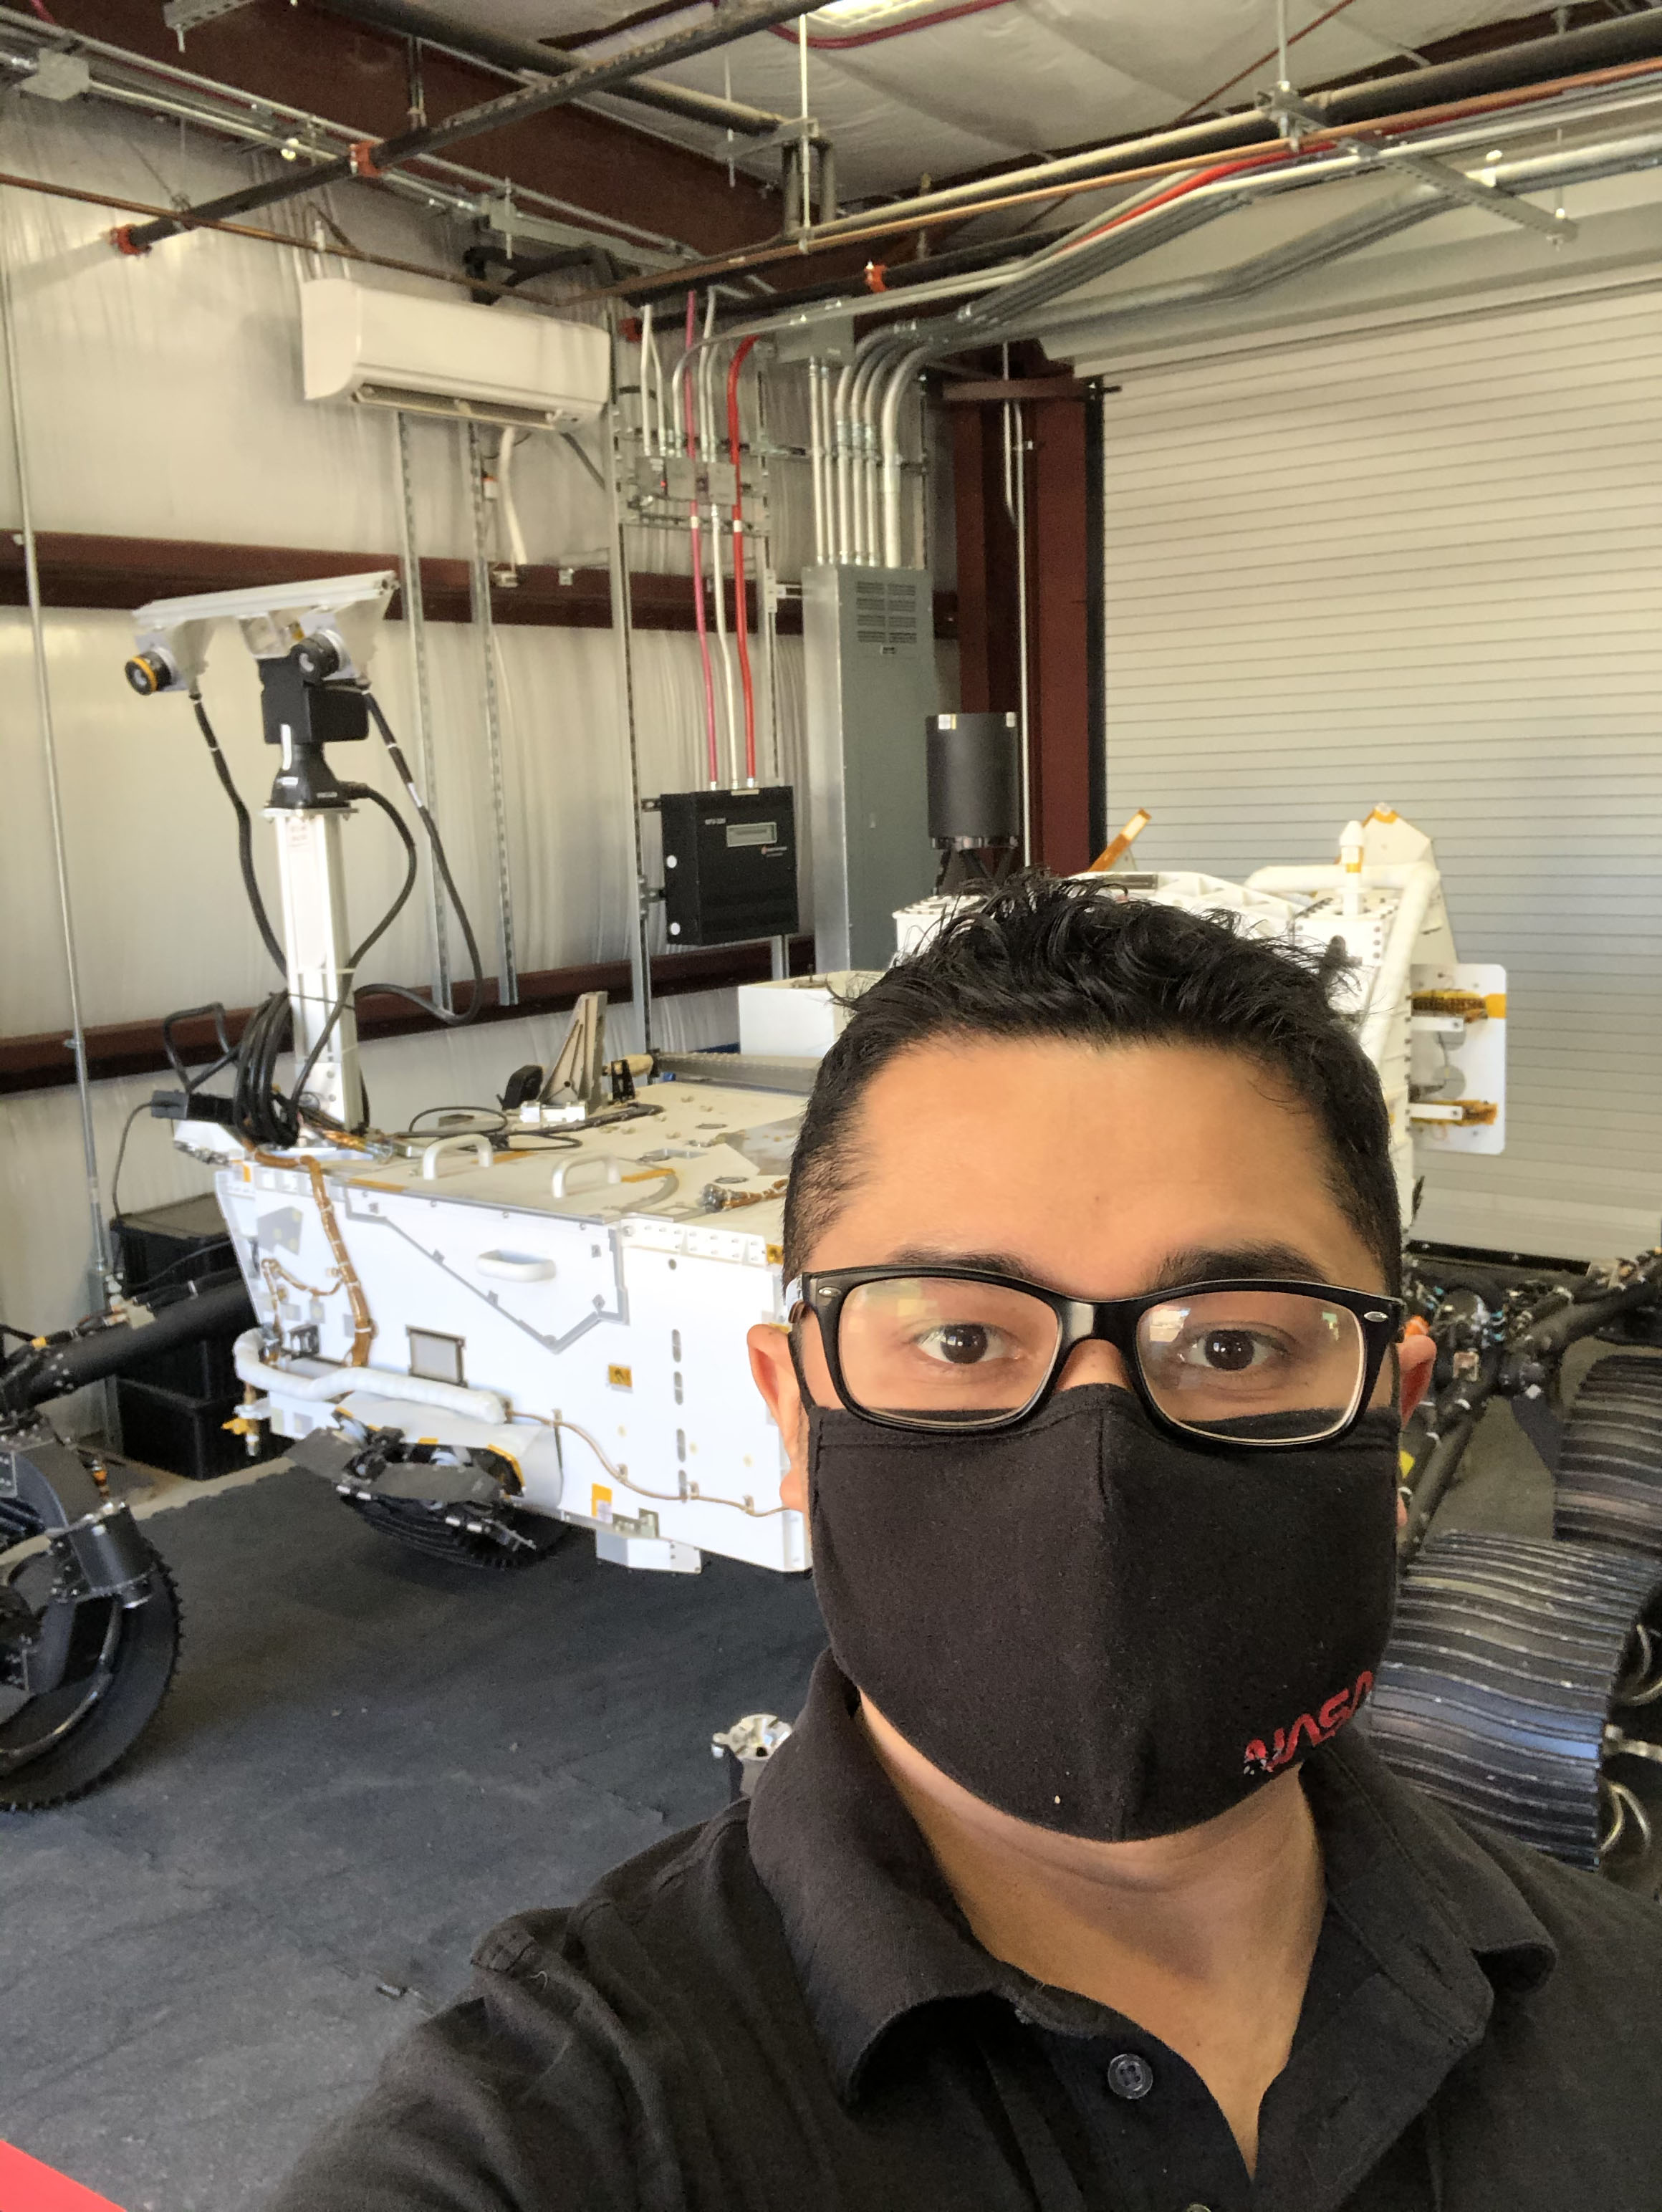 Pedro Cota: From Student Filmmaker to NASA Video Producer